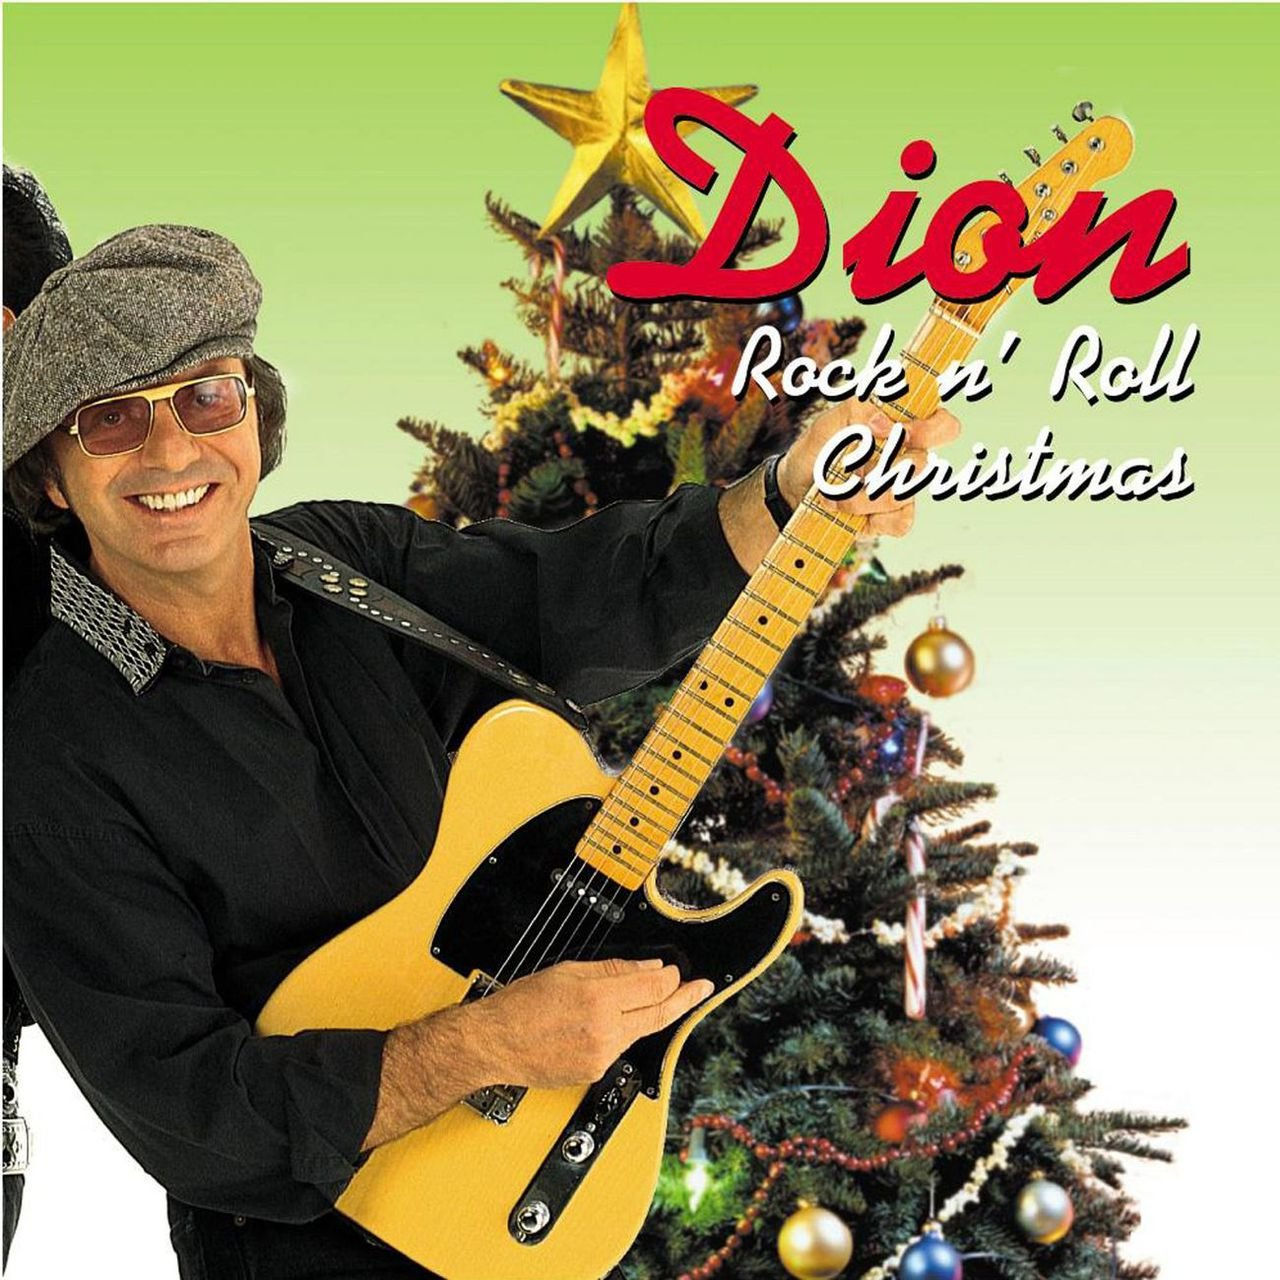 Rock Nu0027 Roll Christmas (World) / Dion TIDAL